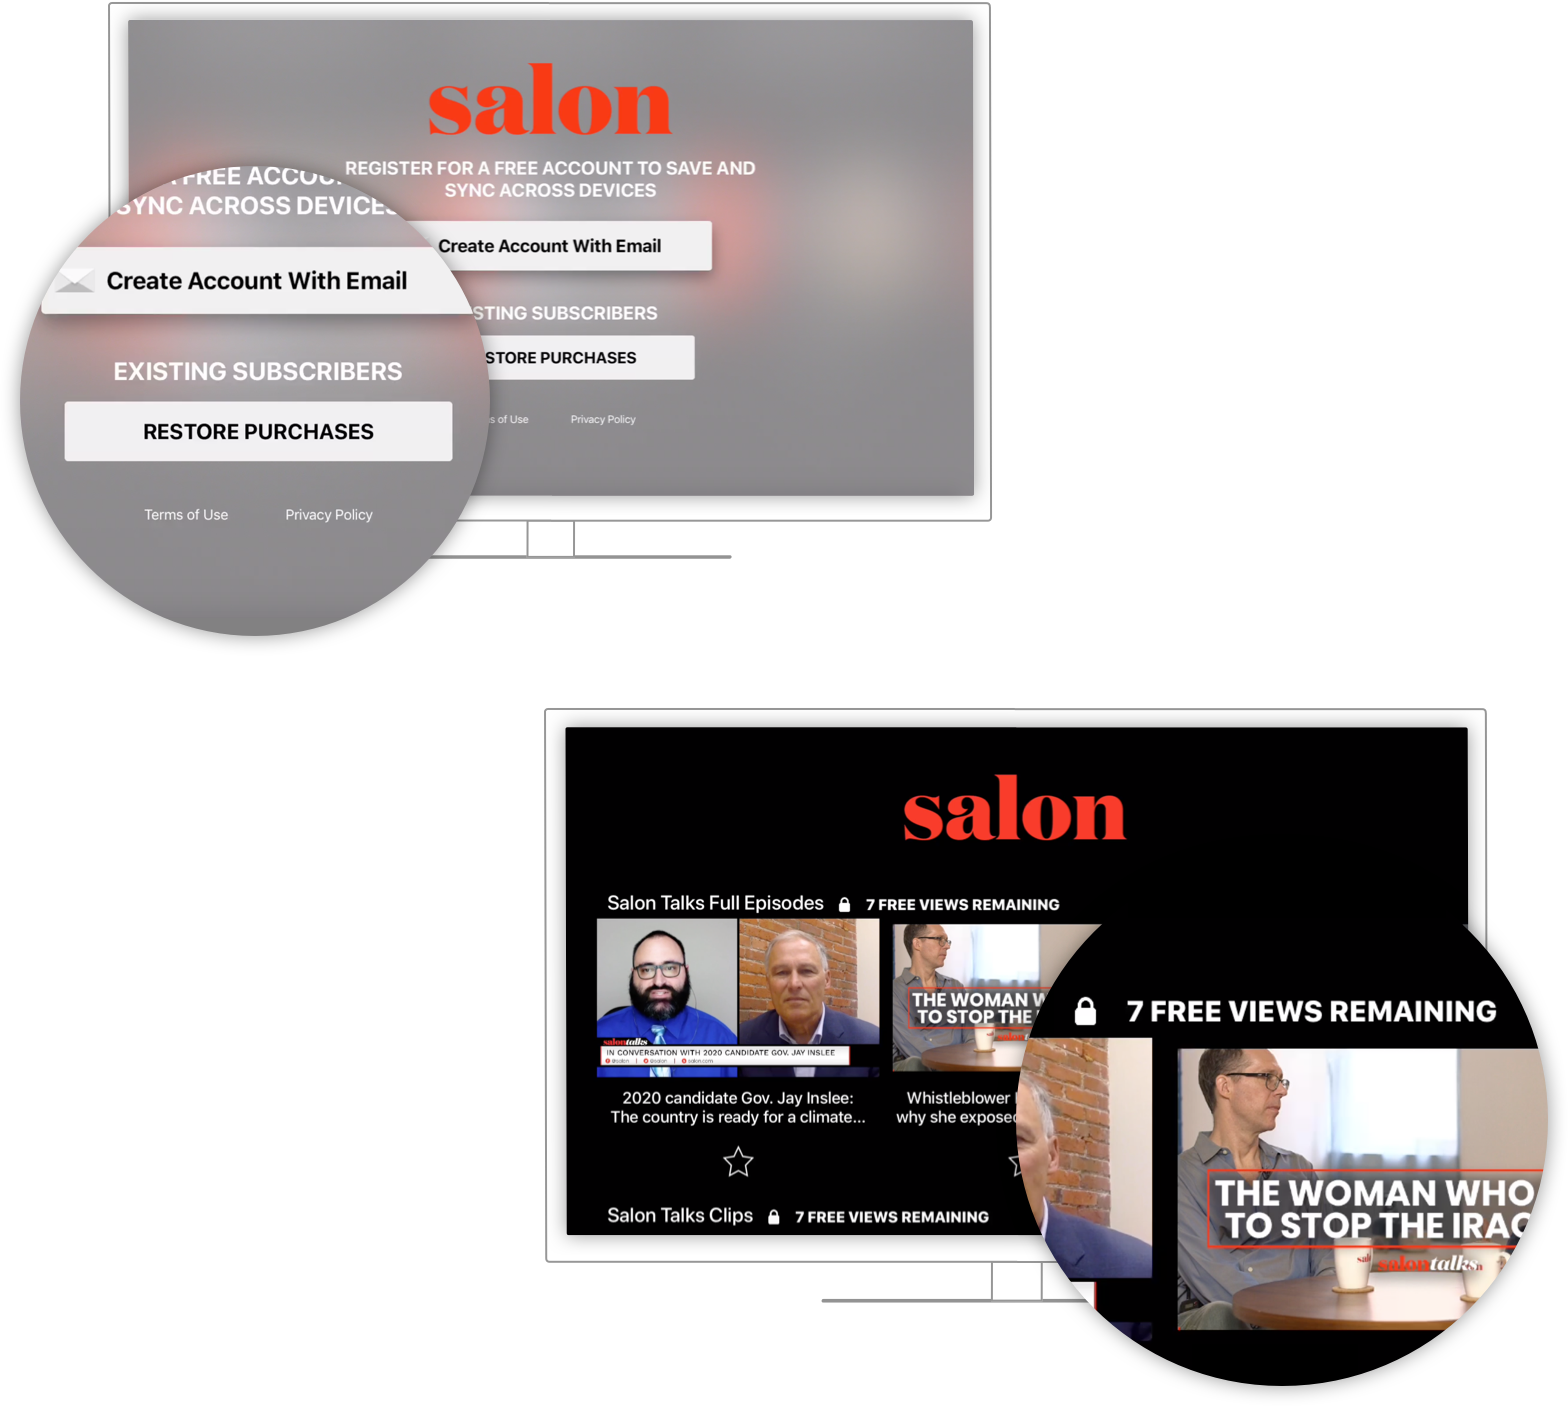 monetization-salon@2x